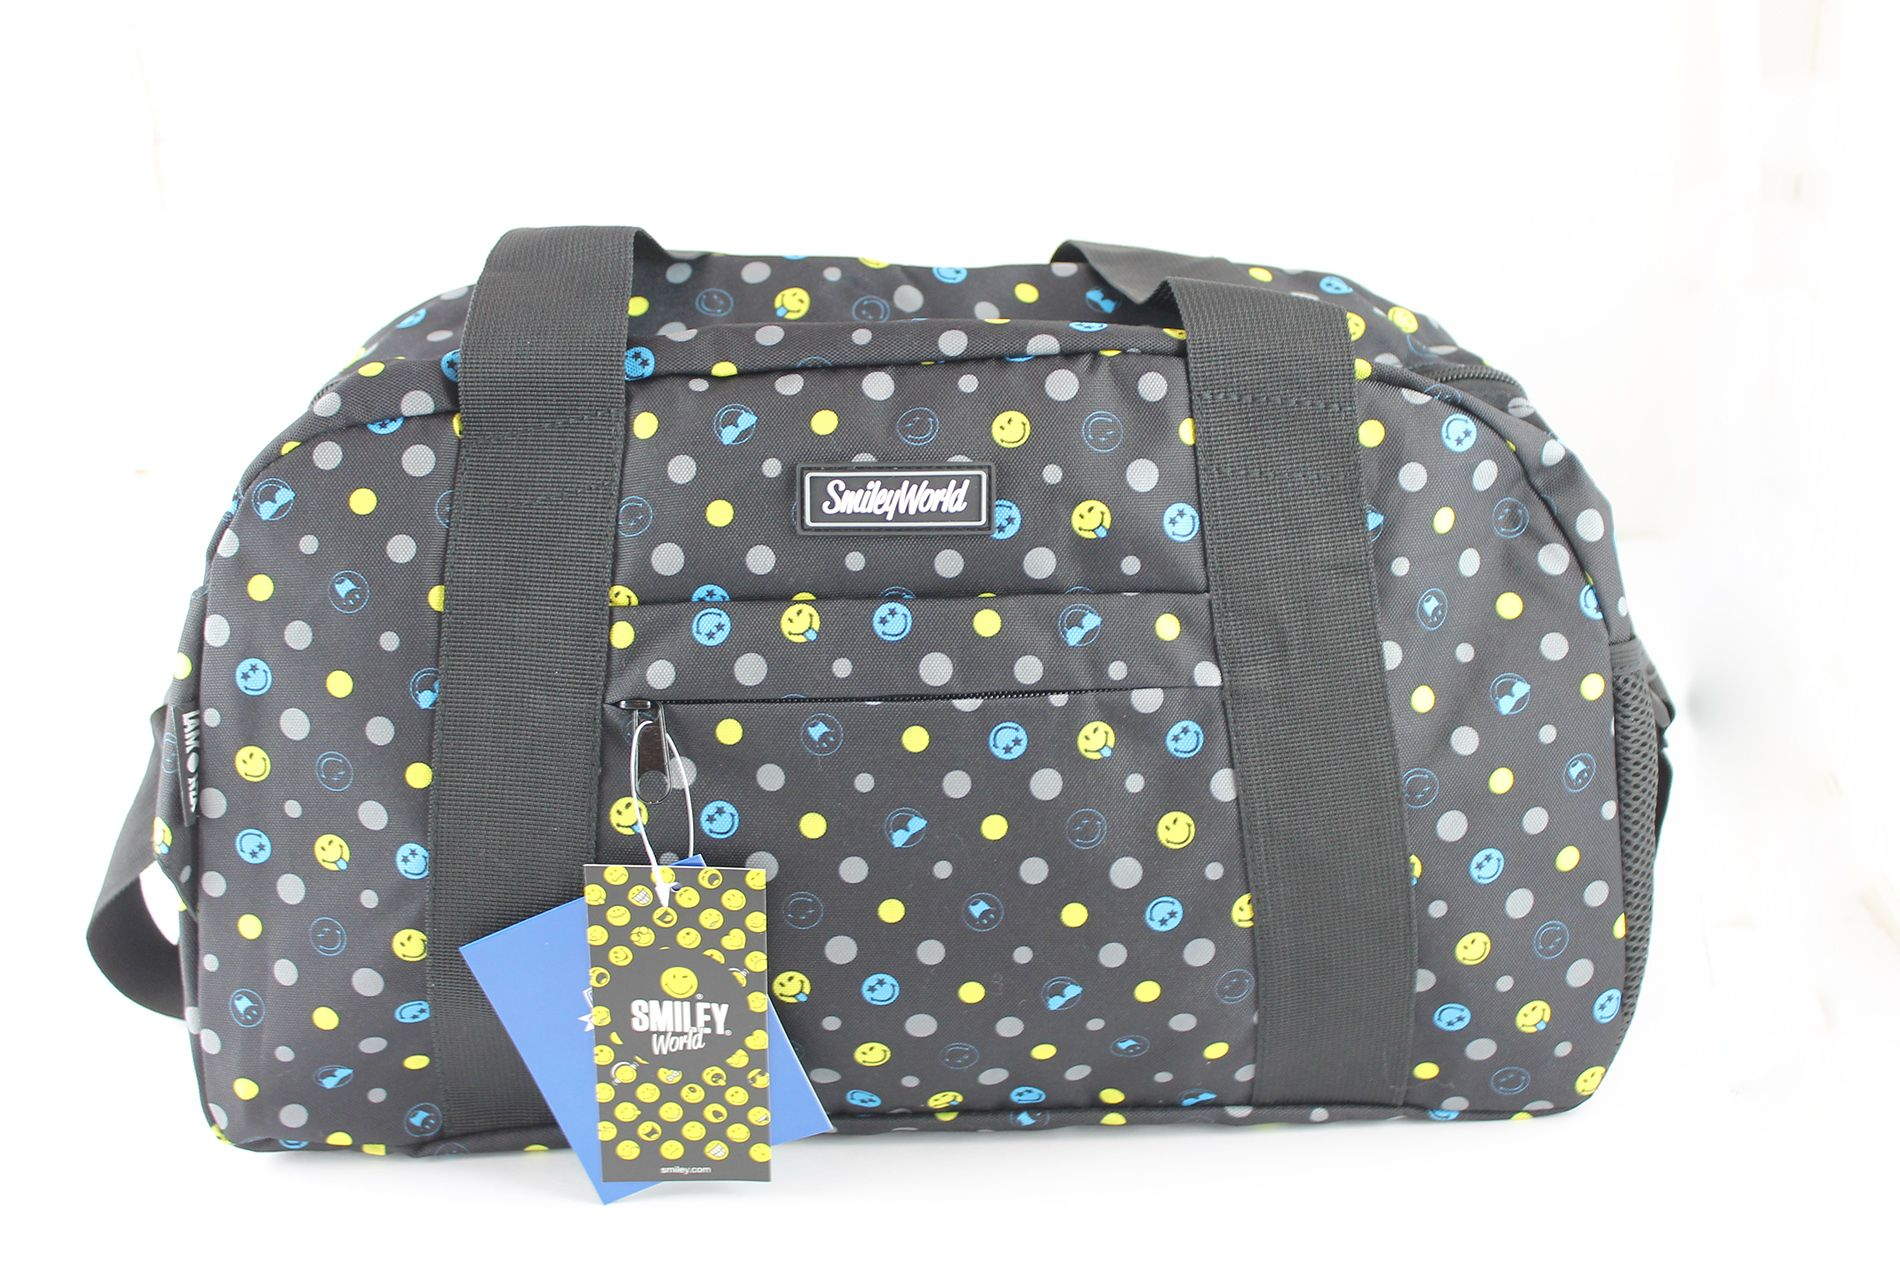 Smiley Back to School backpack